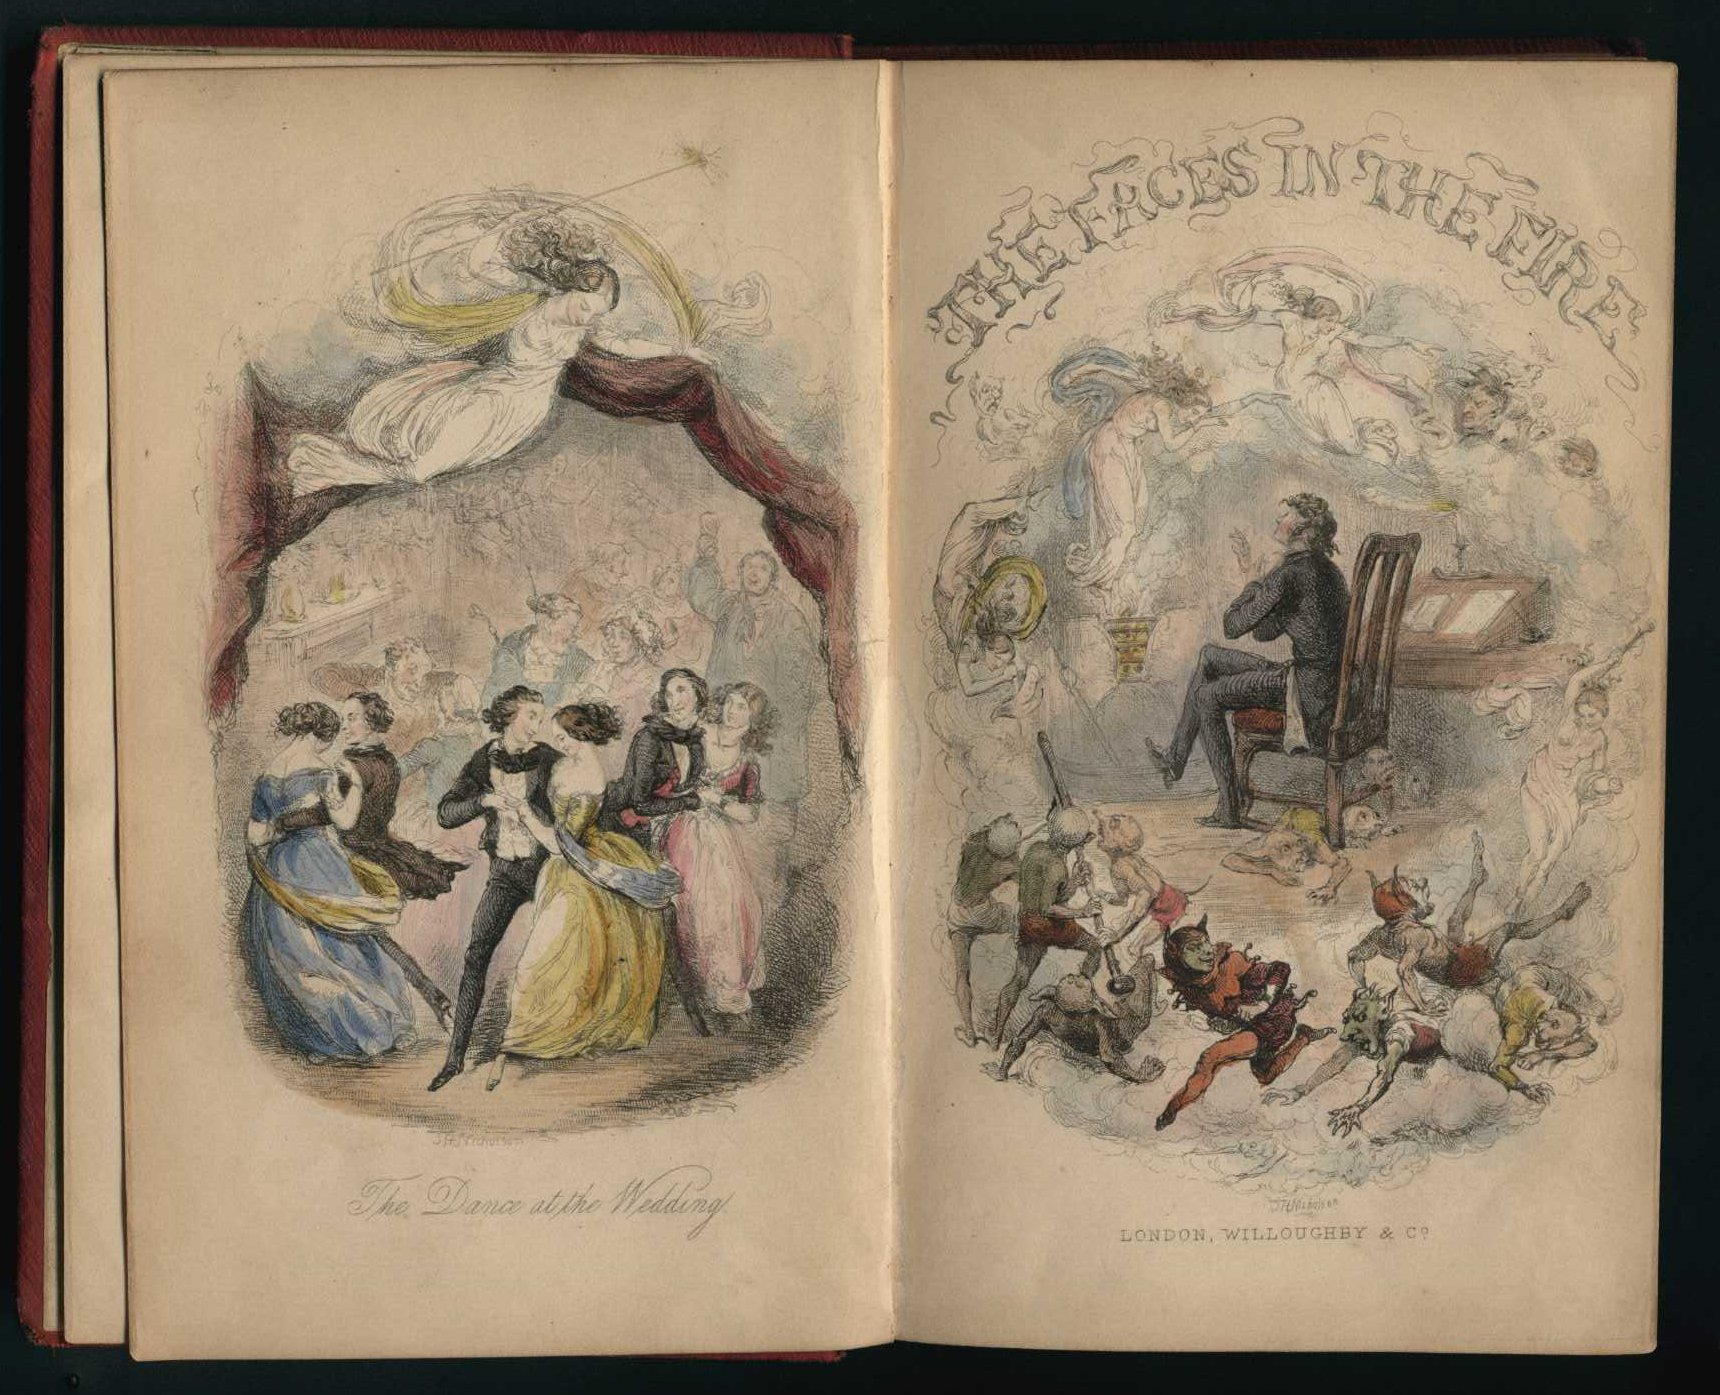 George Frederick Pardon. The faces in the fire: a story for the season. London: Willoughby and Co., 1849.